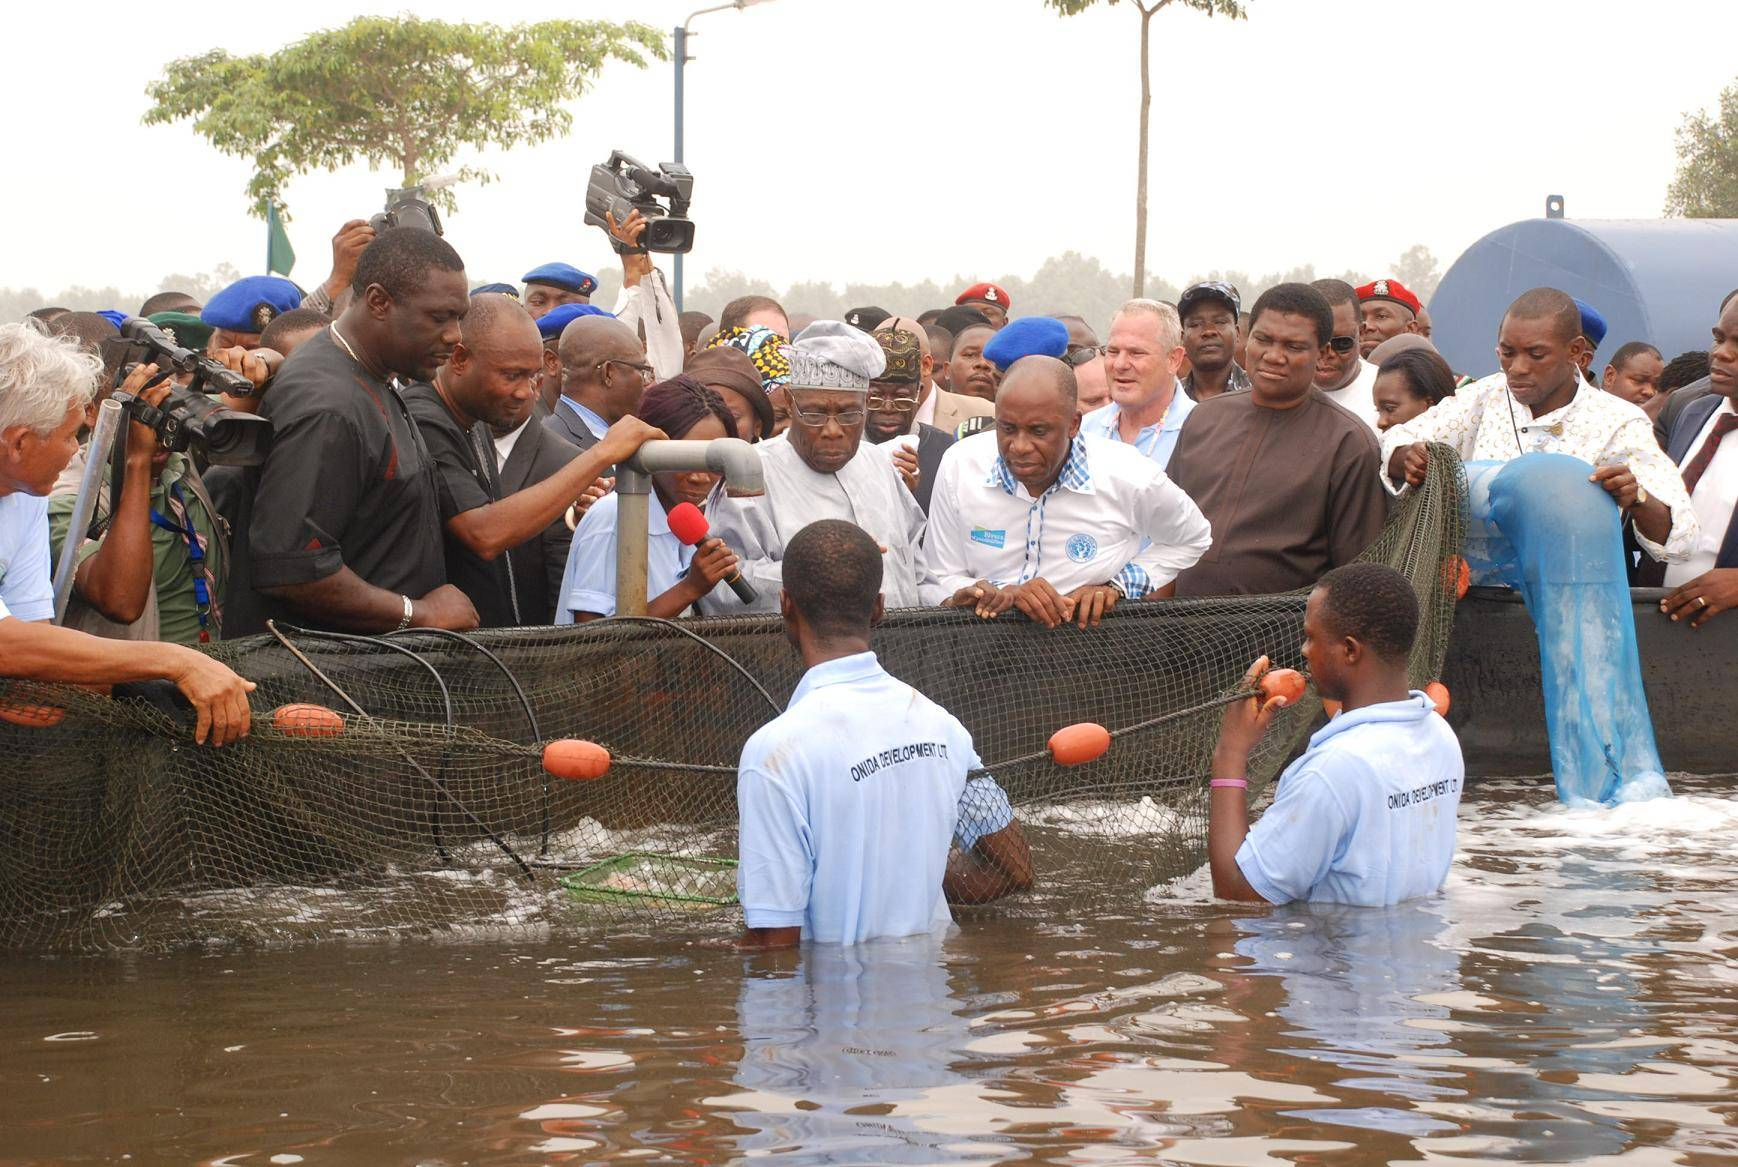 AGRIC 007, FMR PRESIDENT OBASANJO, GOV AMAECHI AND OTHERS OBSERVING THE OPERATIONS OF THE BUGUMA FISH FARM